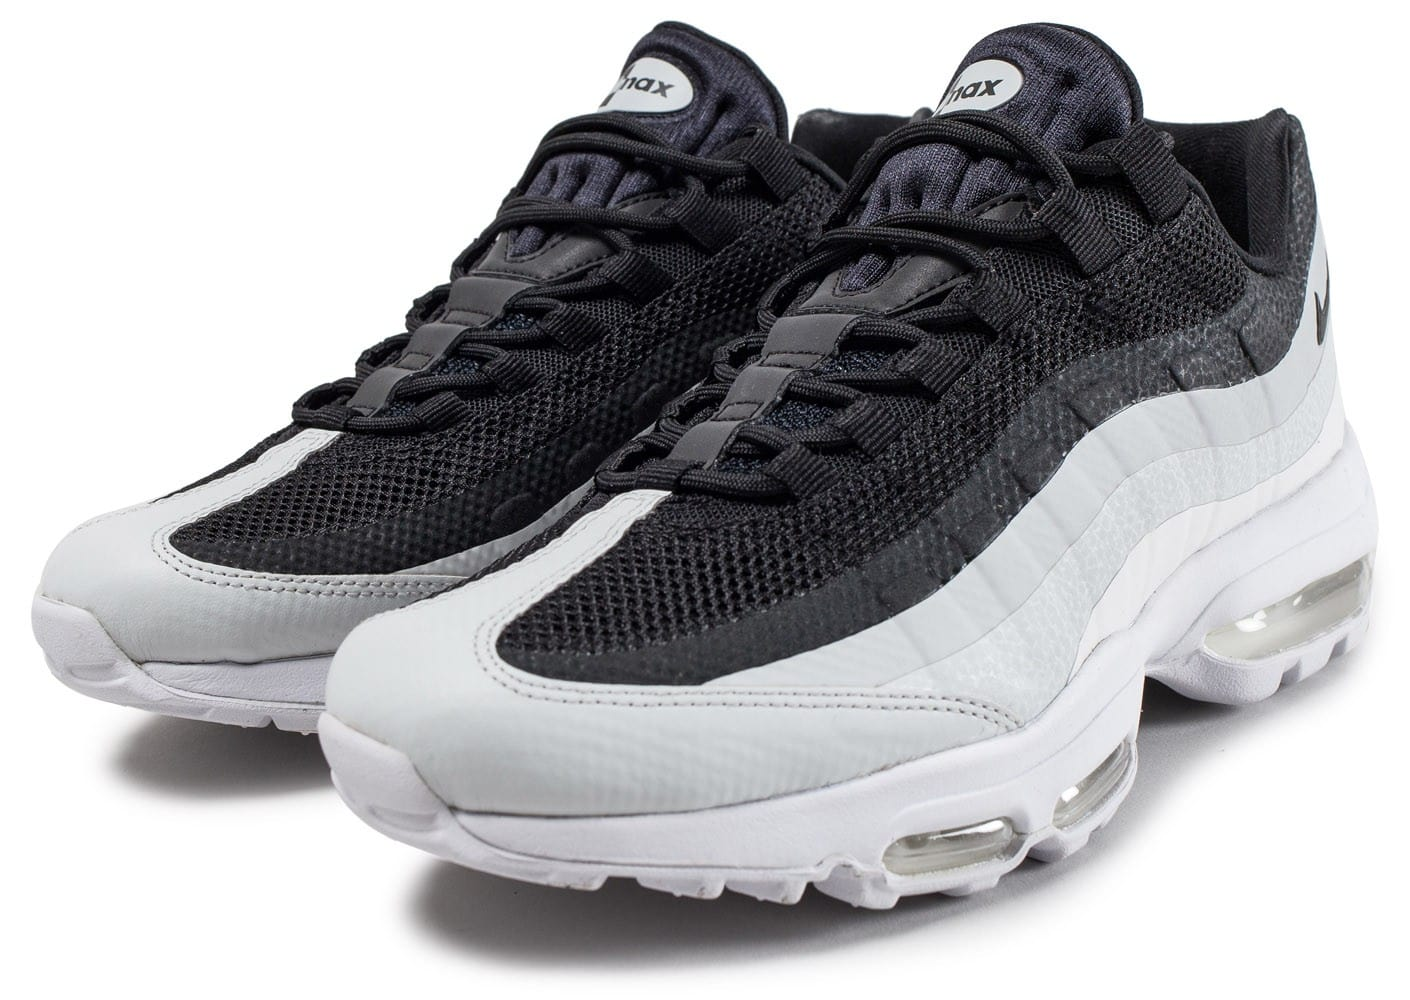 nike air max 95 essential noire et blanche chaussures homme chausport. Black Bedroom Furniture Sets. Home Design Ideas